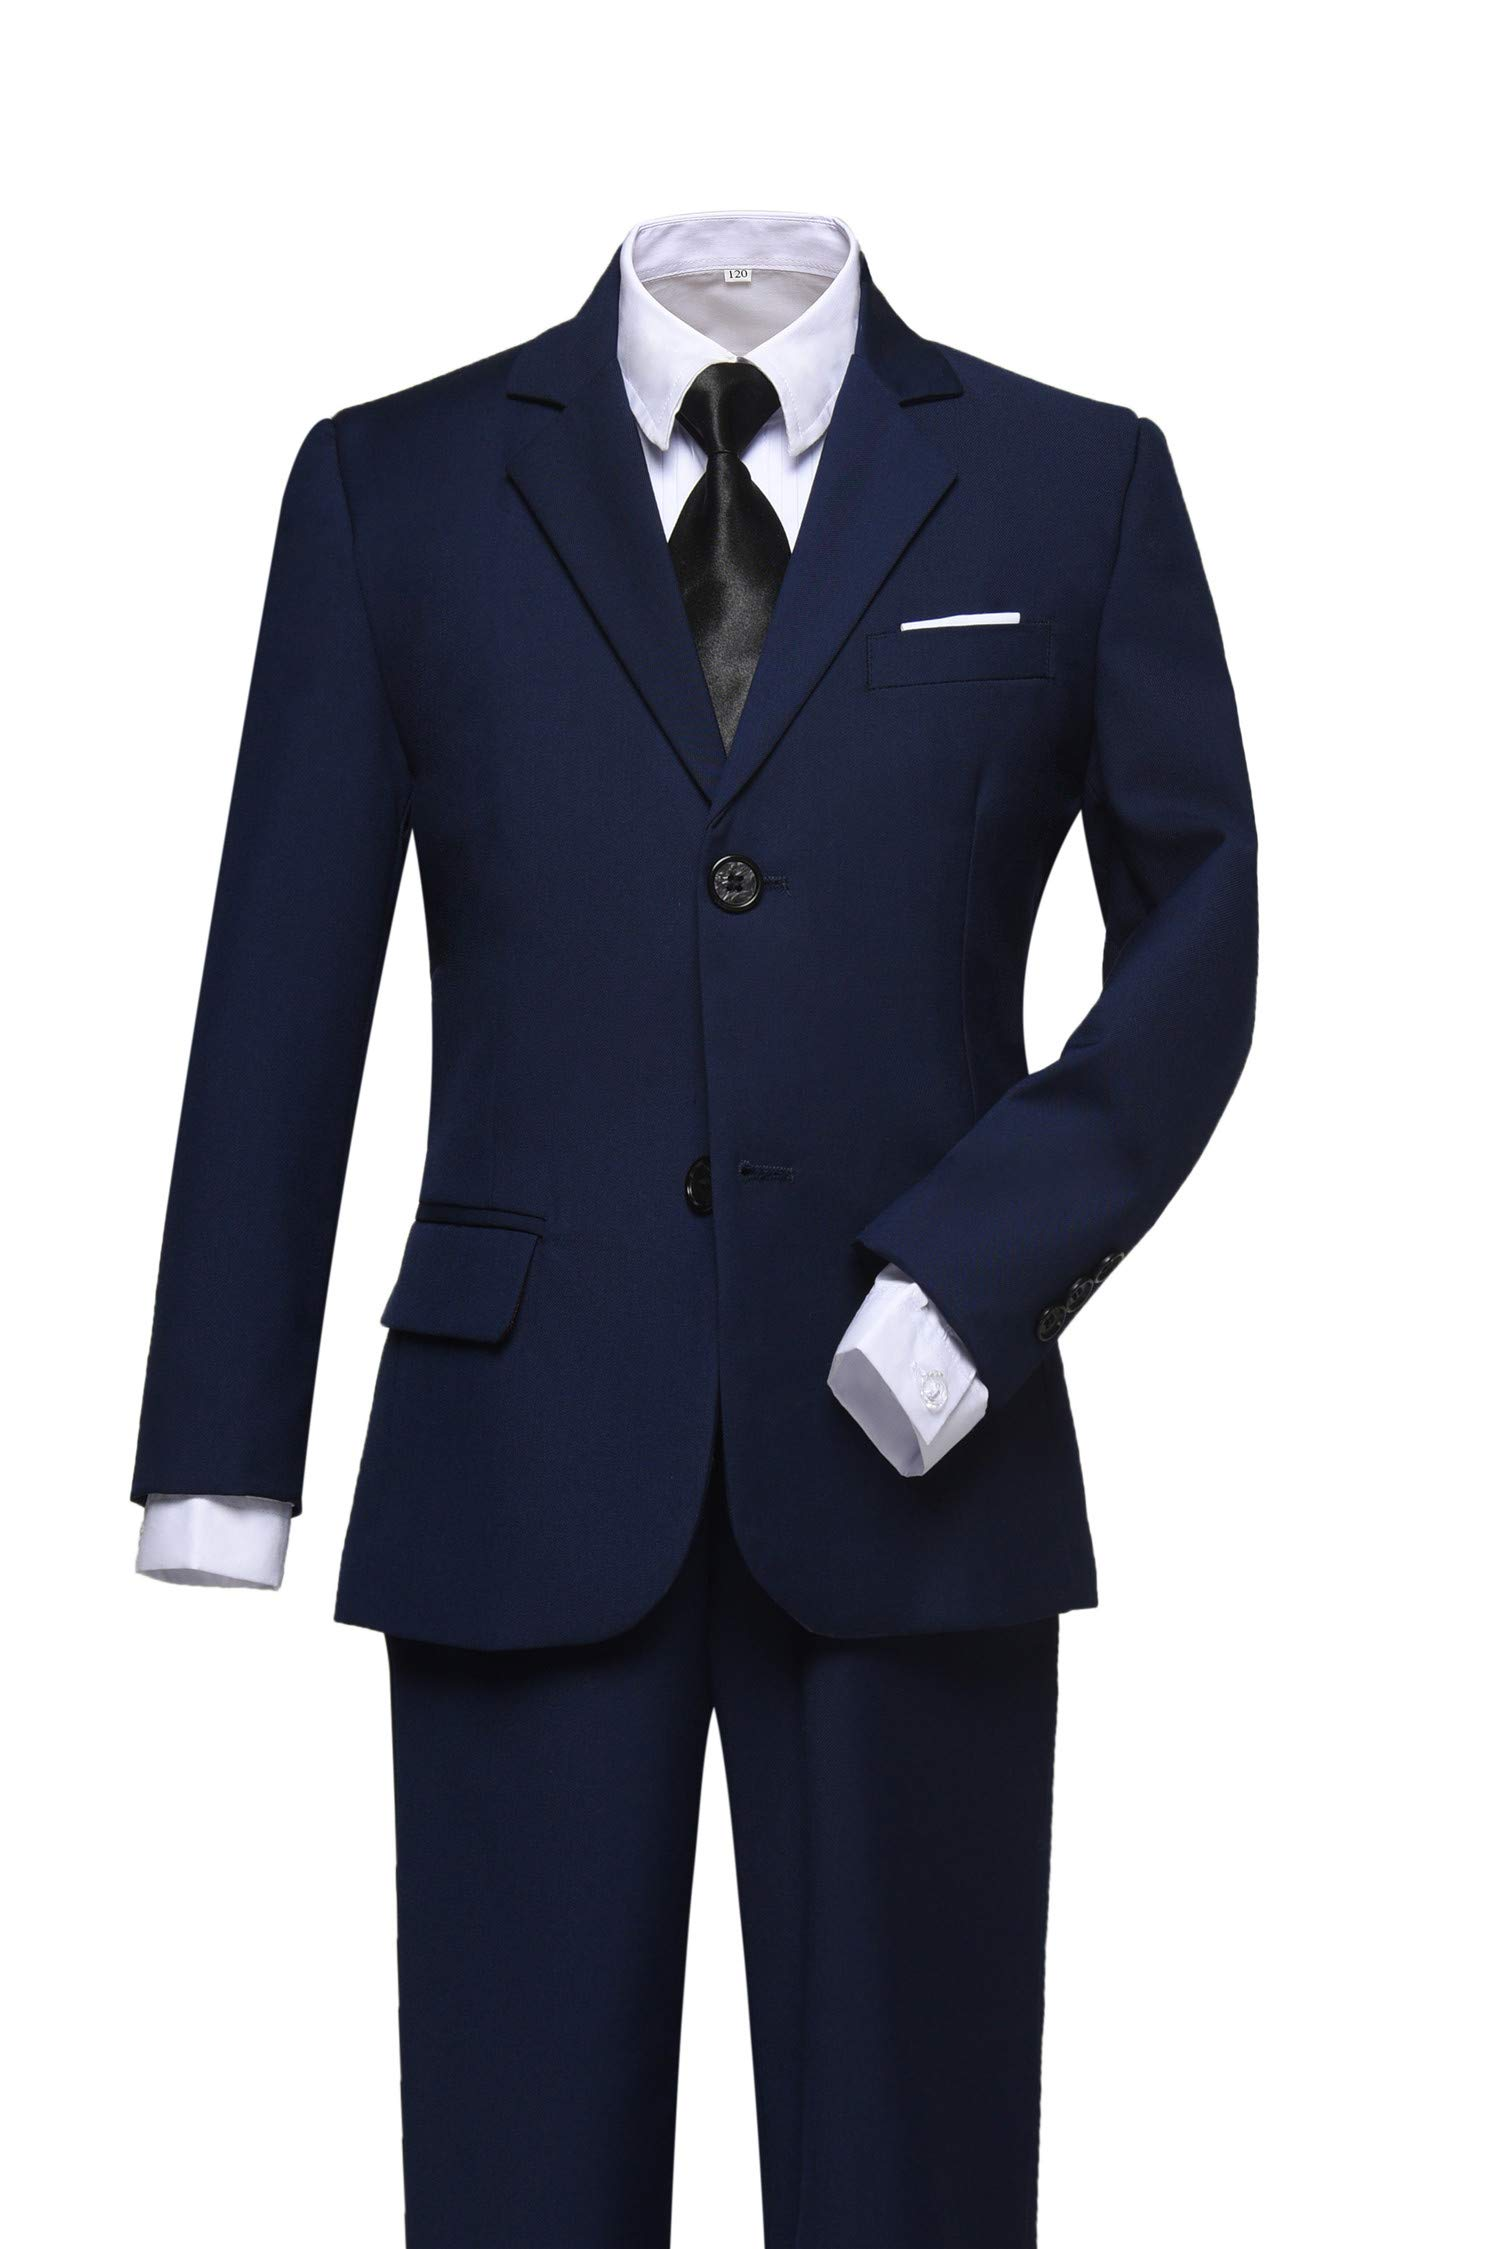 Visaccy Ring Bearer Outfit Boys First Communion Navy Suits Size 5